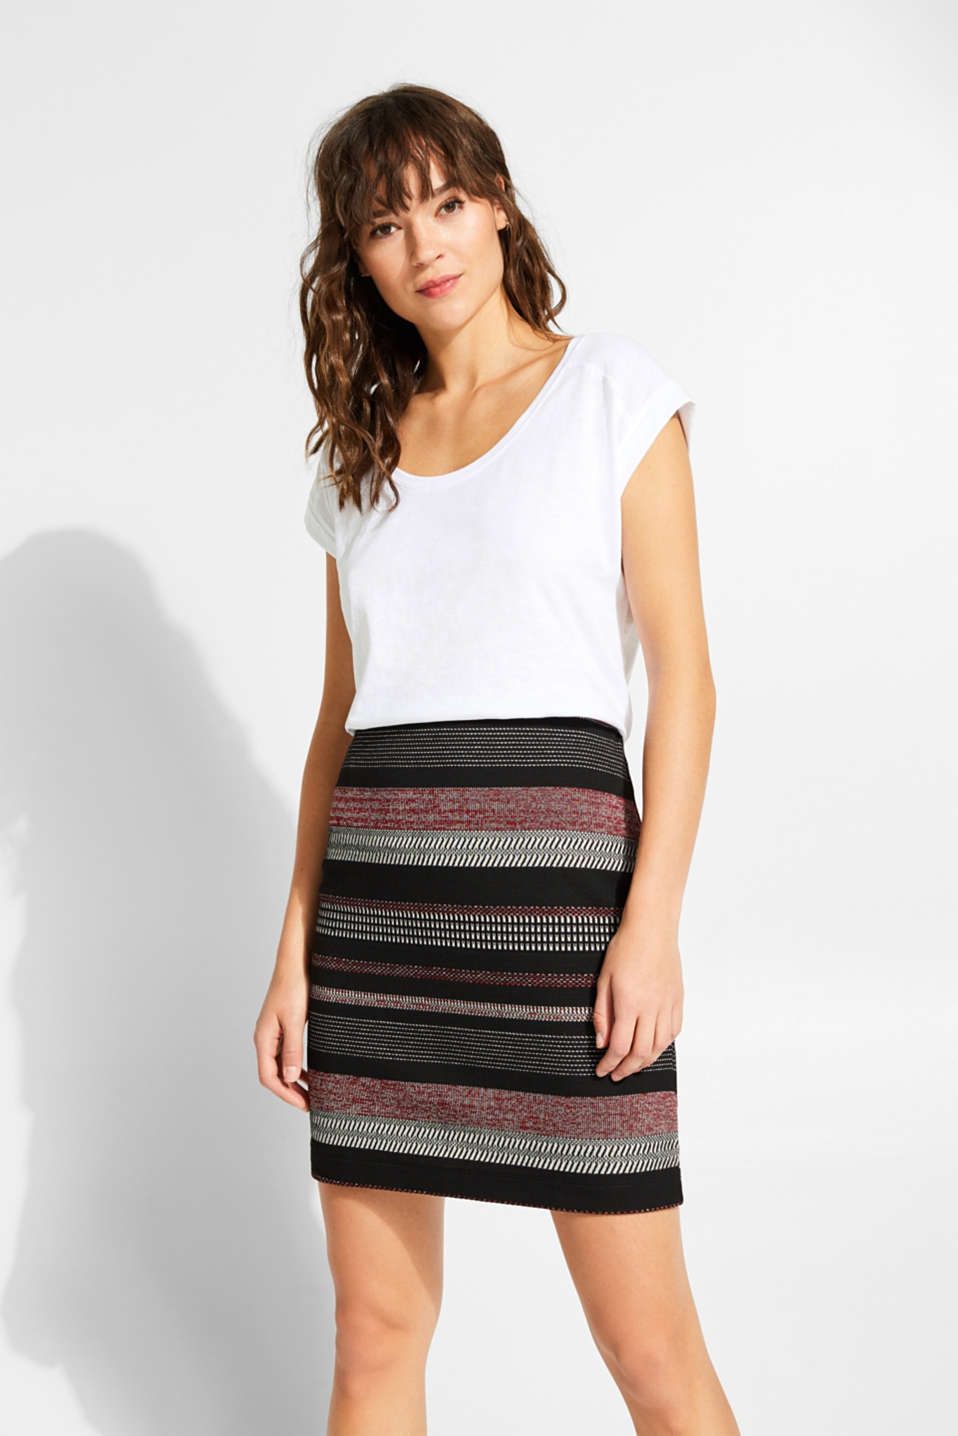 Esprit - Stretch skirt made of jacquard jersey